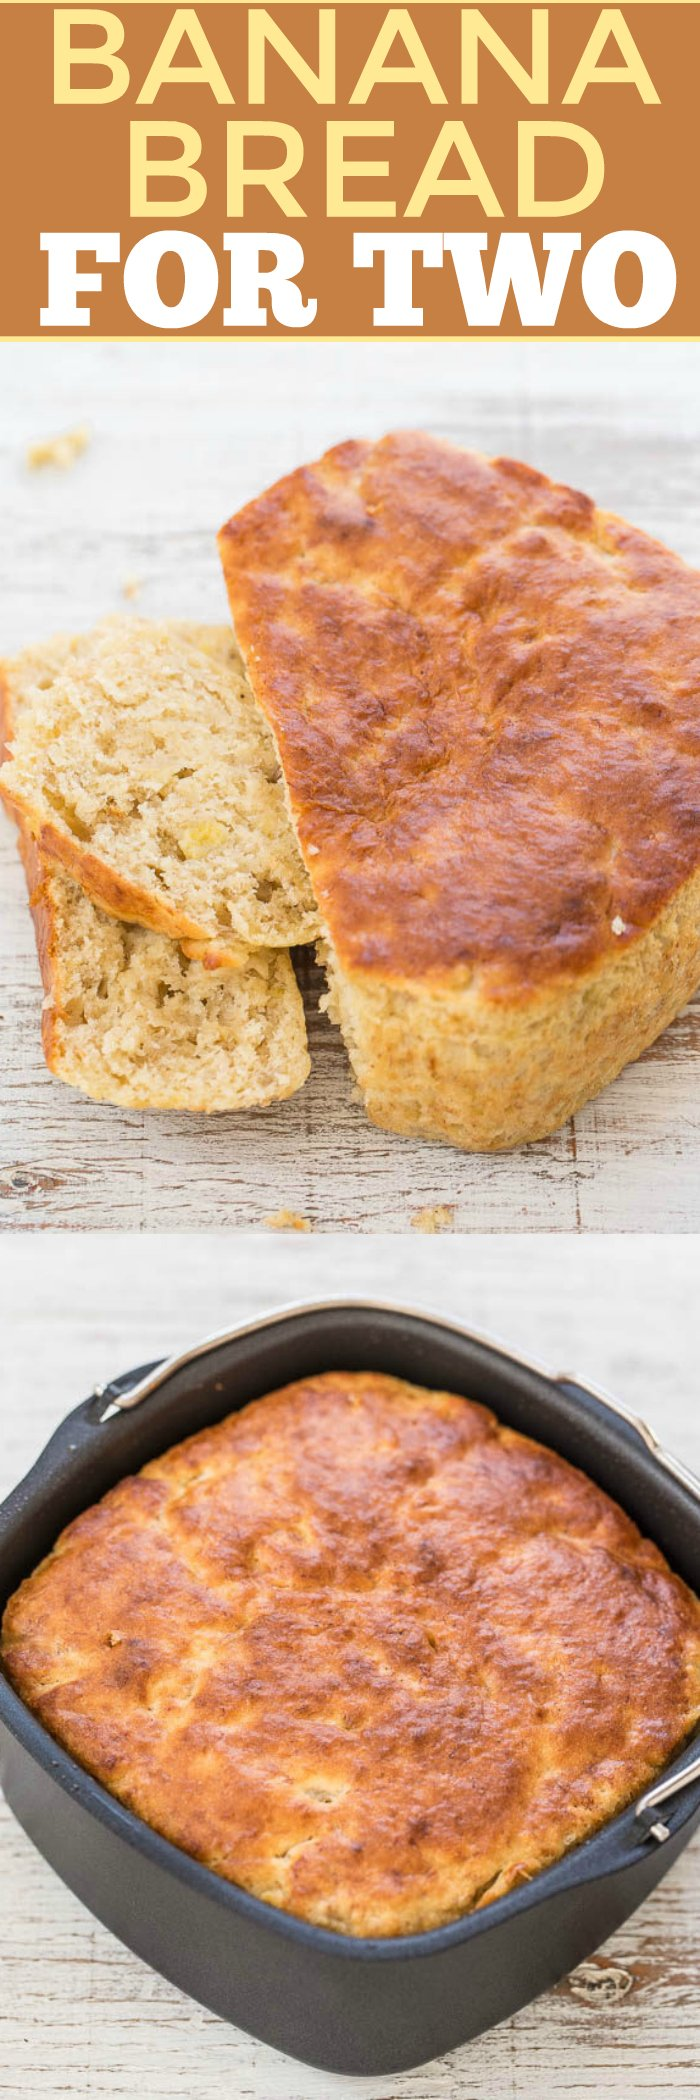 Air Fryer Banana Bread For Two - You'll never guess HOW this easy, no-mixer bread is baked!! It's super soft, tender, moist, and the perfect little loaf for two!!